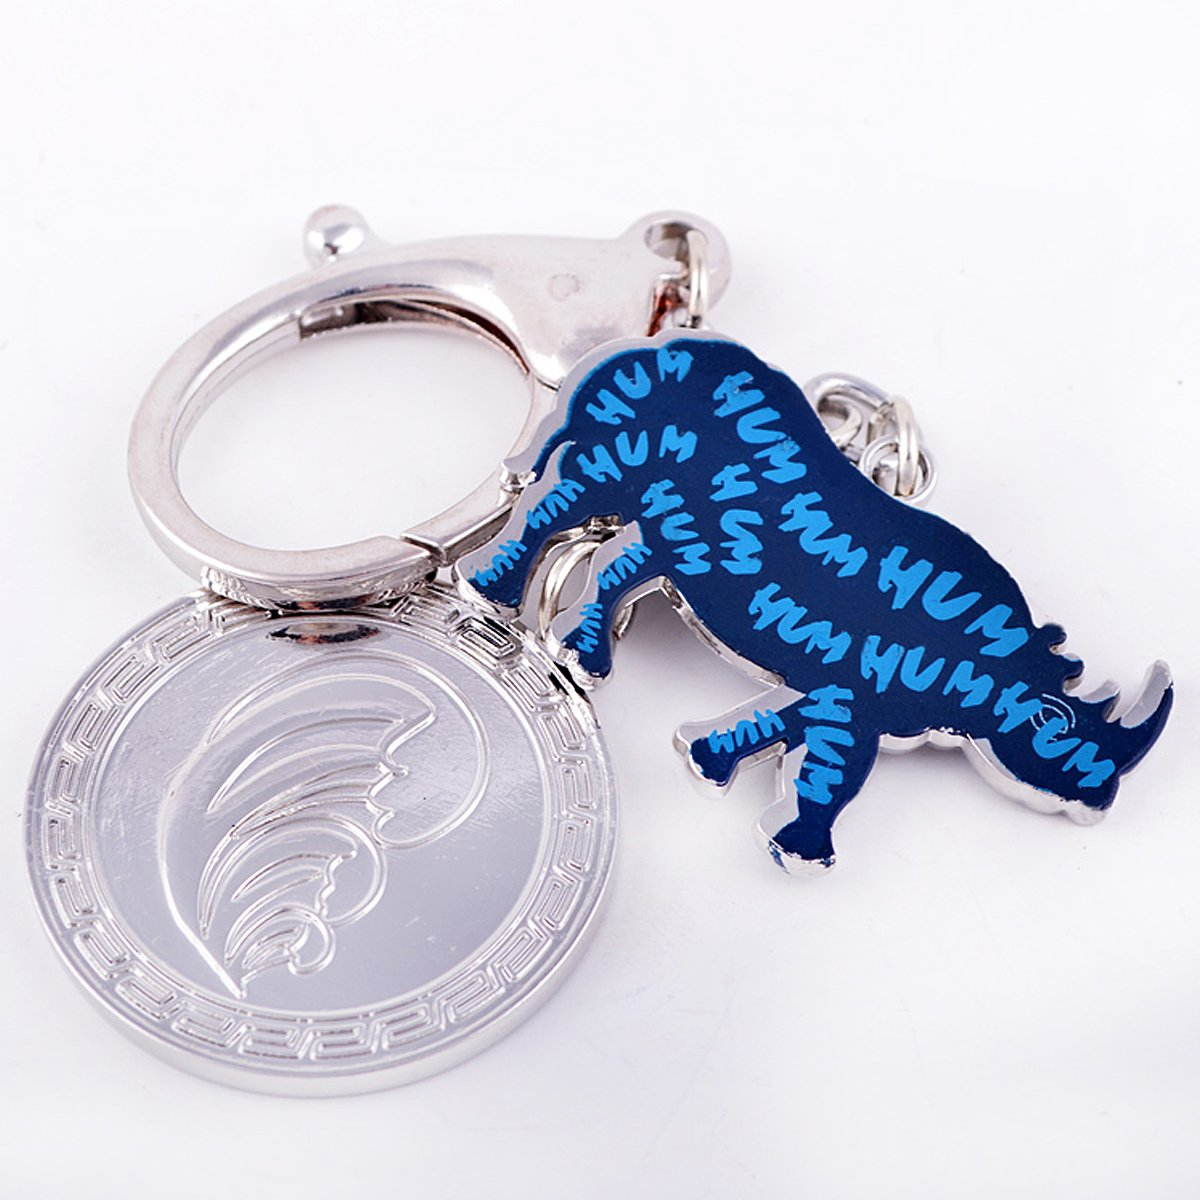 Feng Shui Blue Rhinoceros and Elephant Protection KeyChain Charm Amulet Handbag Hanging (W1071) fengshuisale